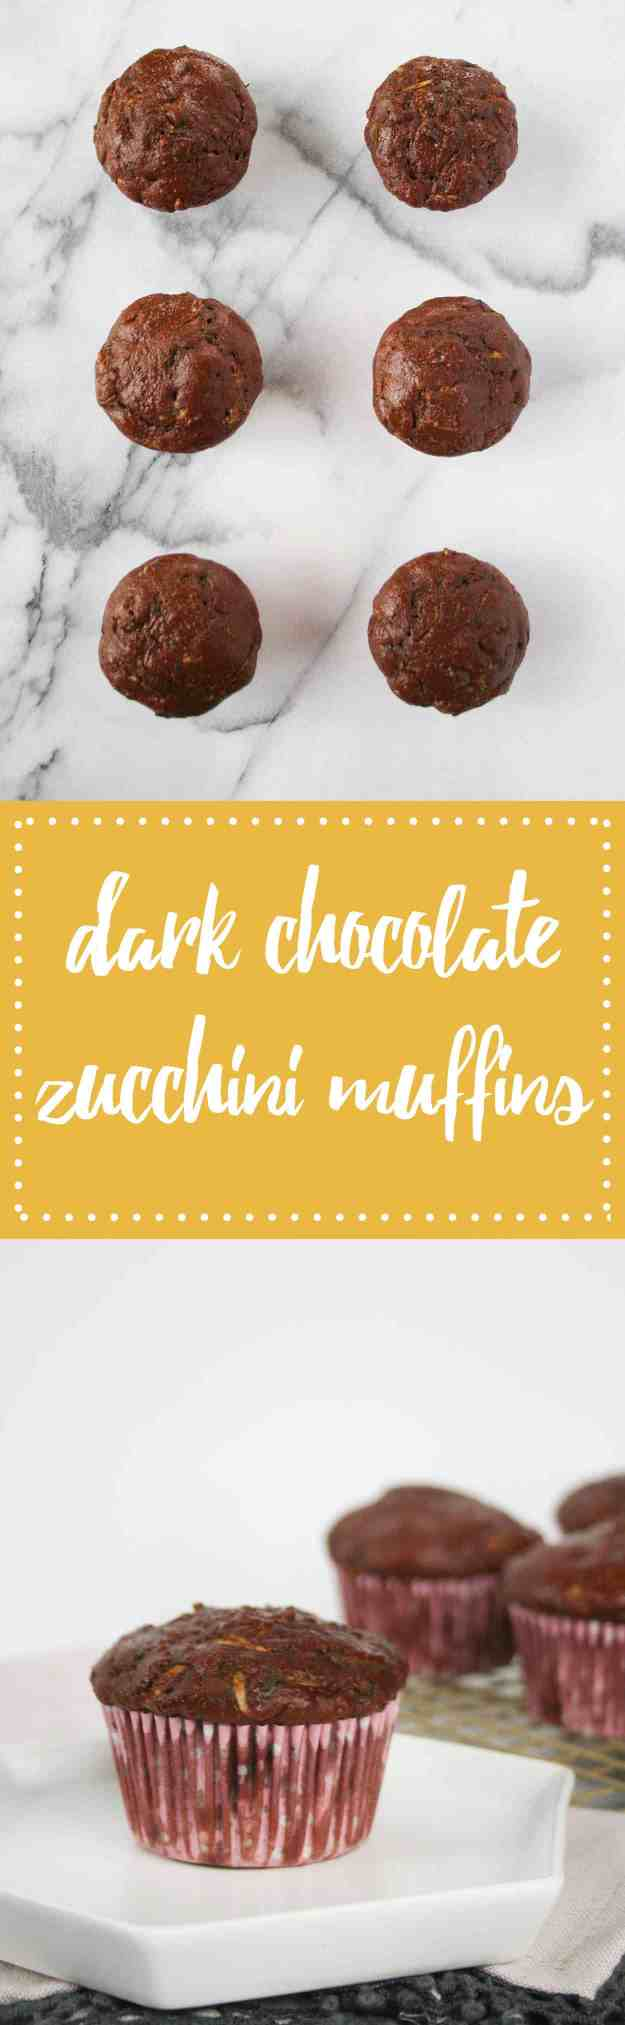 Dark Chocolate Zucchini Muffins made with Greek yogurt and a favorite summer ingredients! | hungrybynature.com